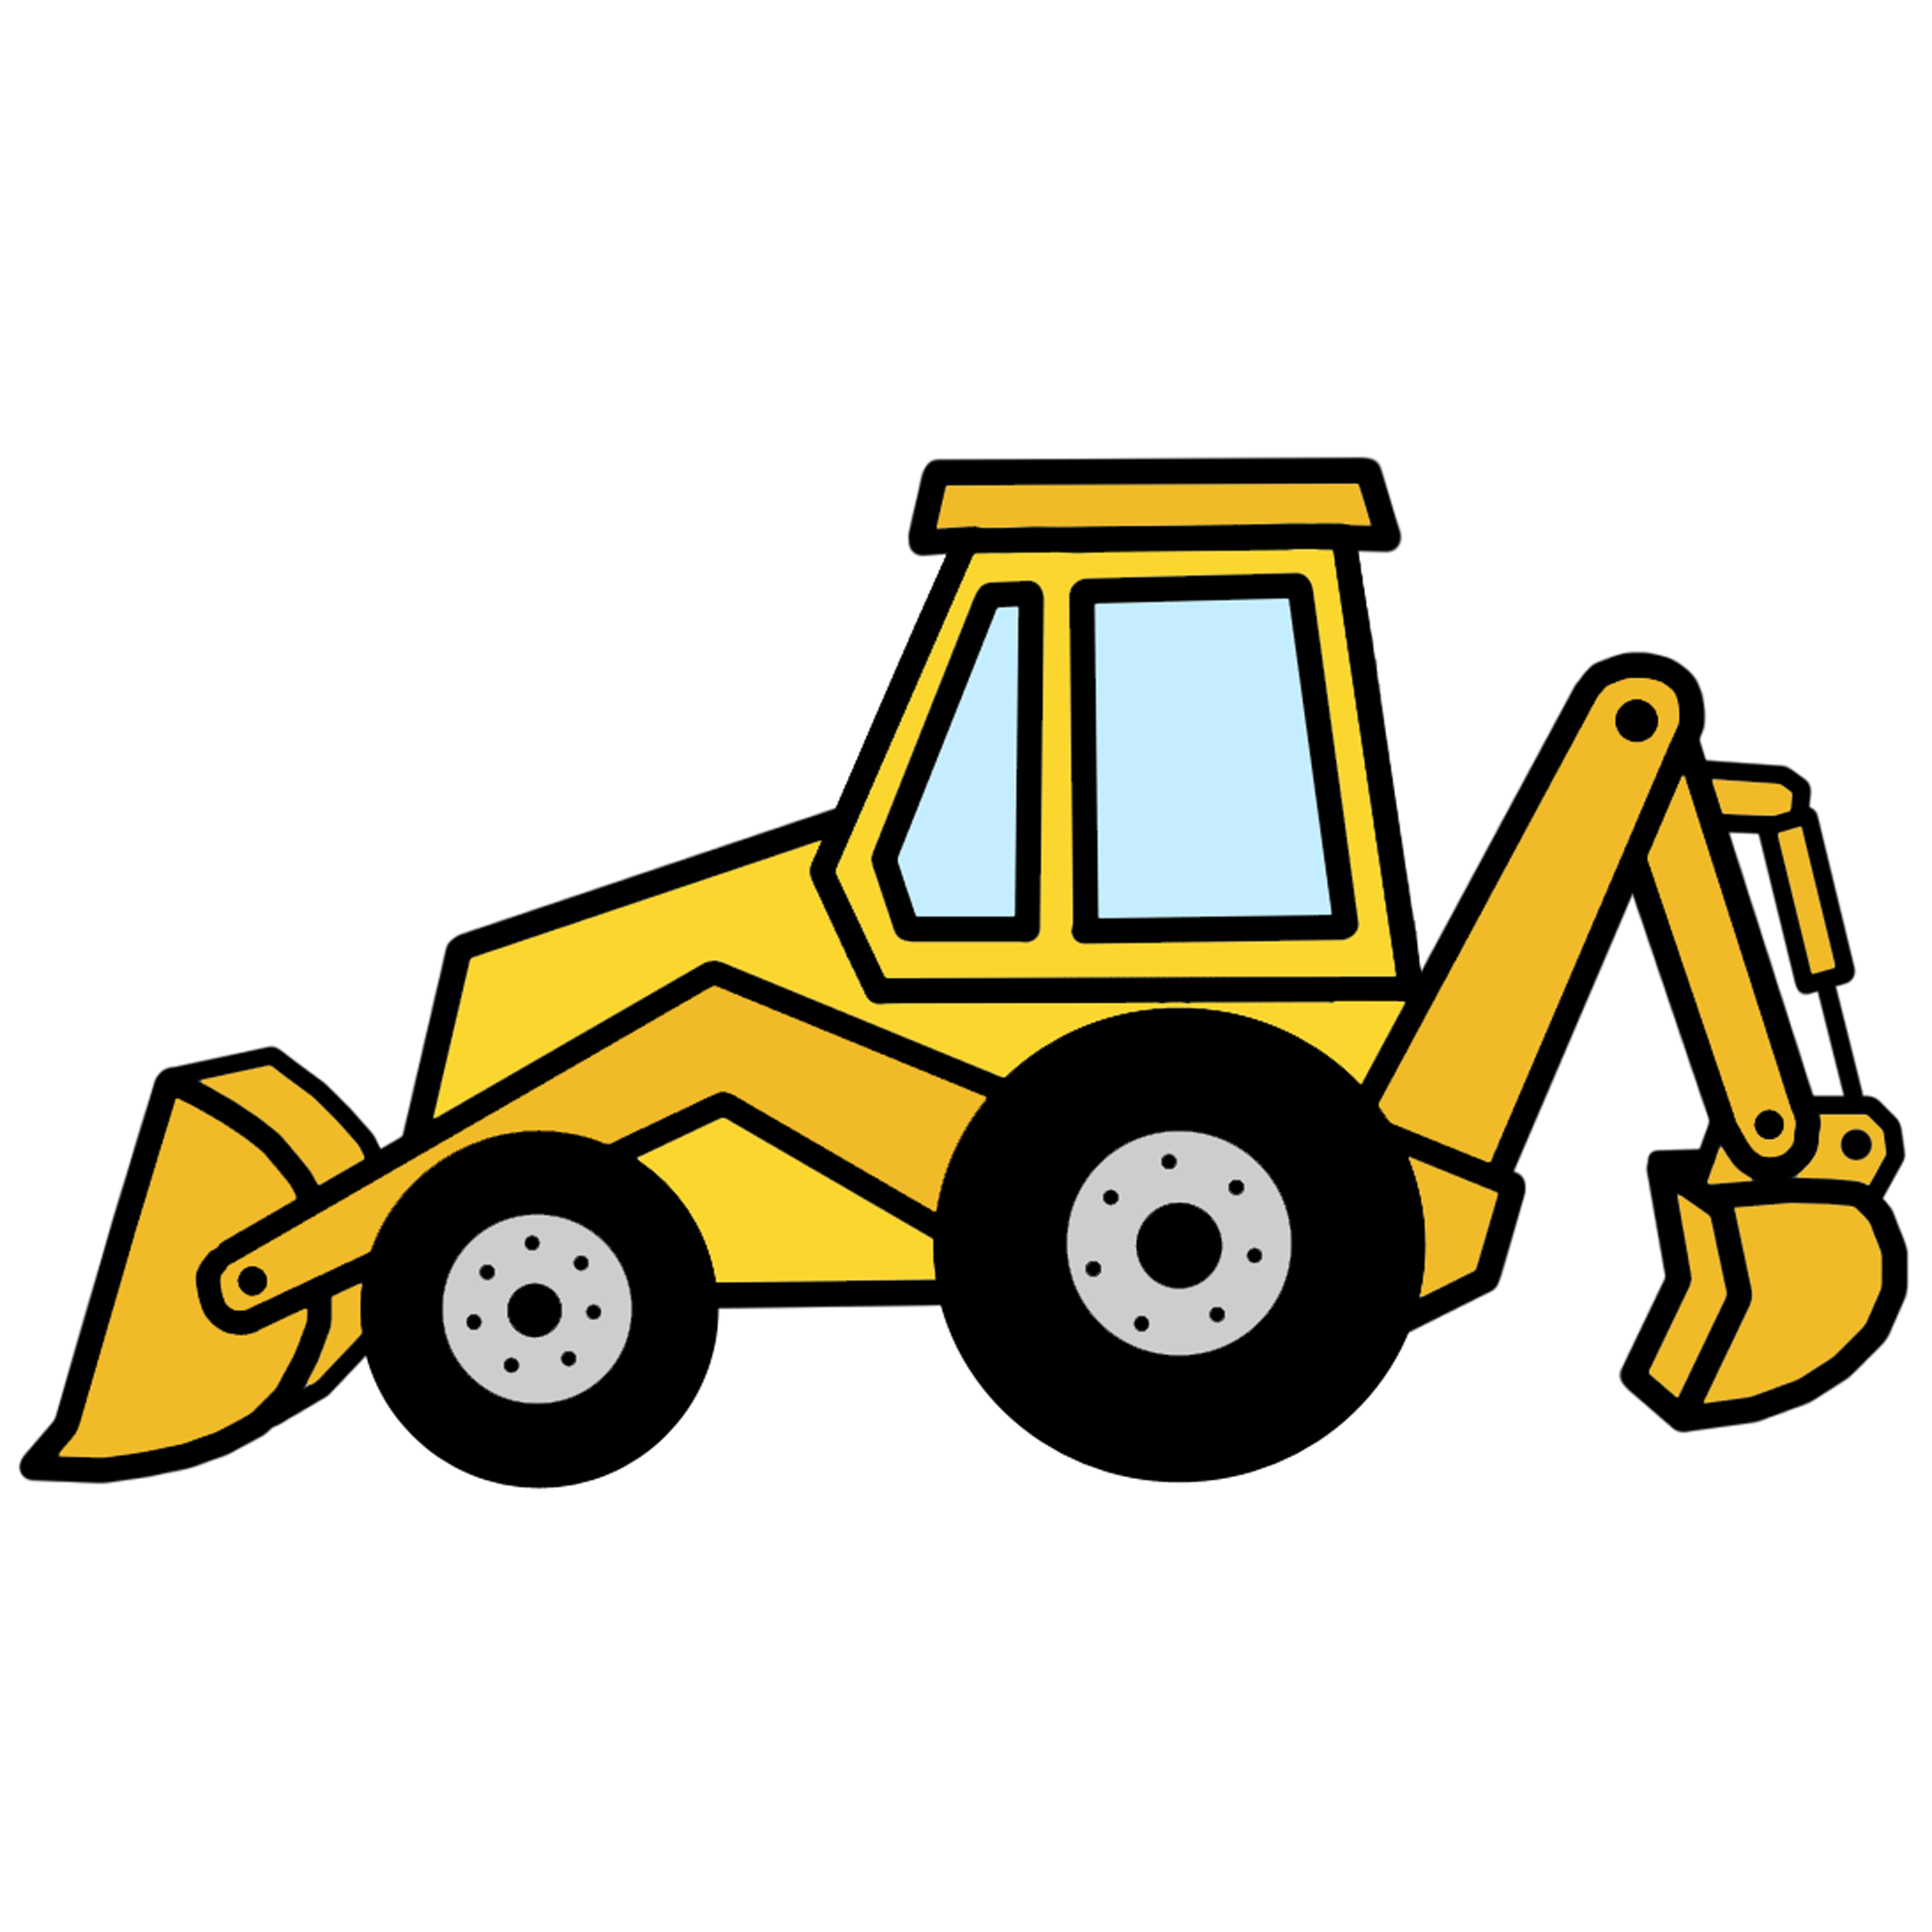 bulldozer silhouette vector at getdrawings com free for personal rh getdrawings com caterpillar bulldozer clipart bulldozer clipart black and white